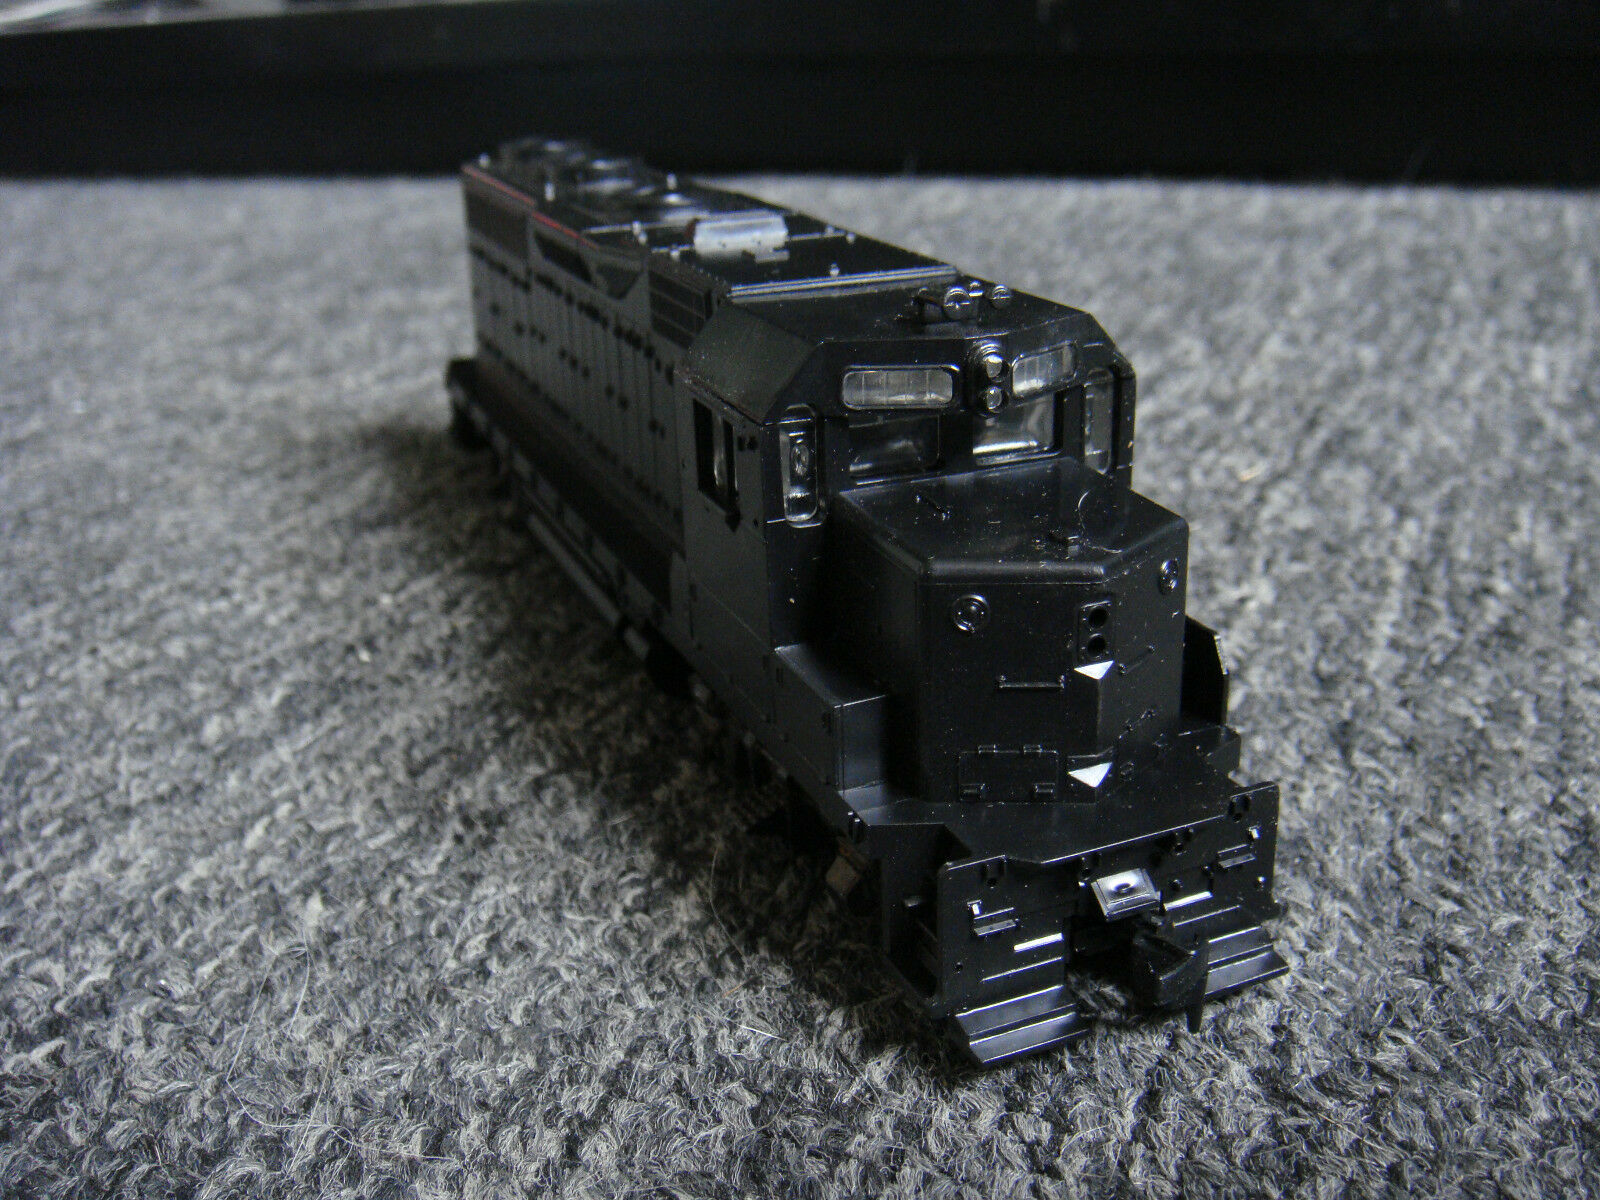 Vintage Athearn 4220 GP-35 Undecorated HO Scale Railroad Train - New In Box